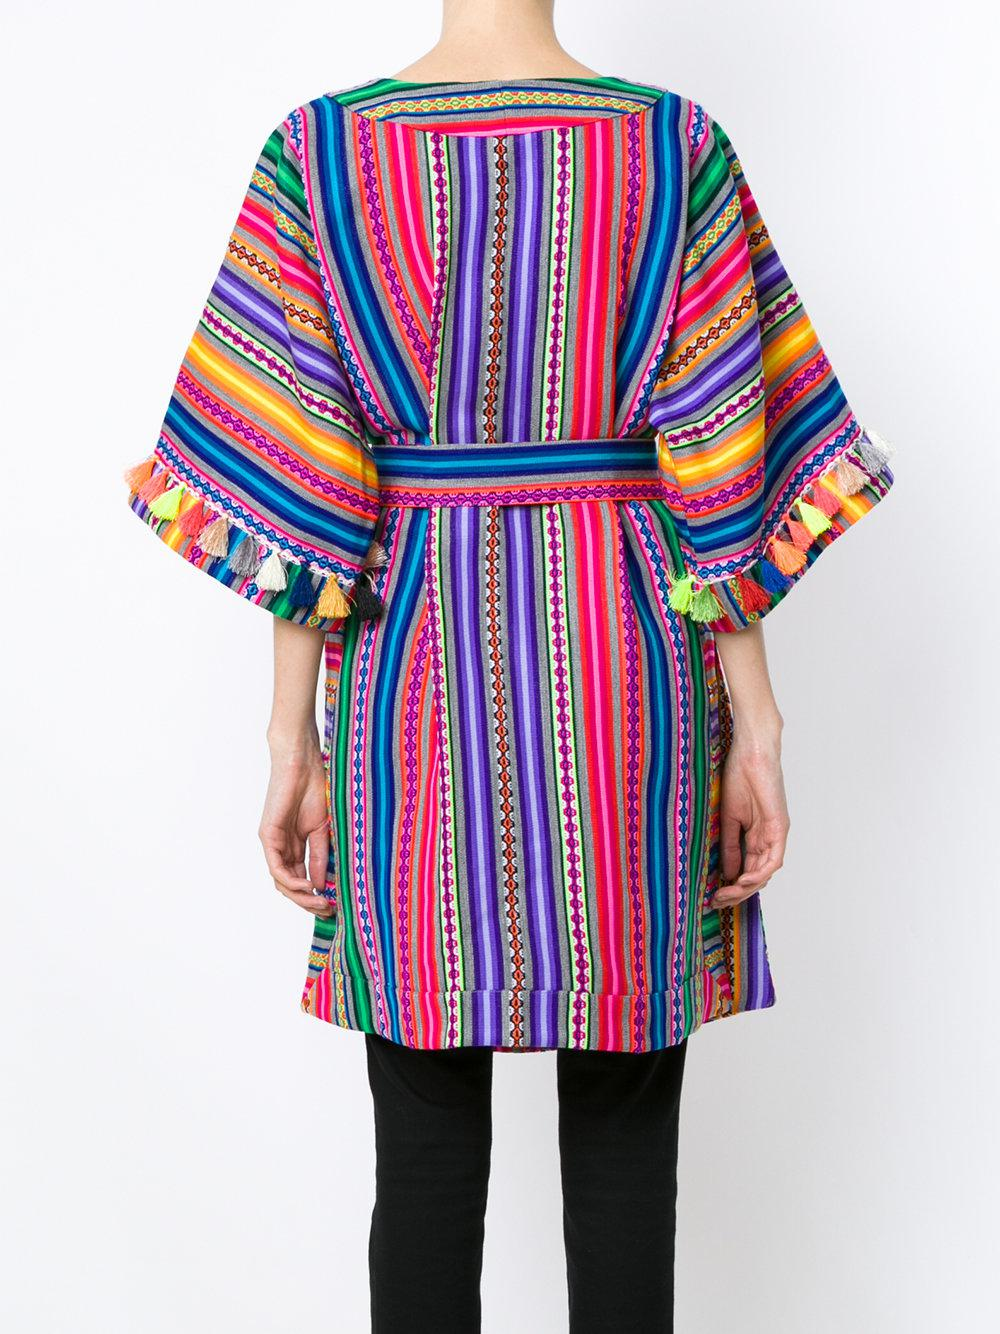 Clearance Amazing Price Outlet Top Quality Pasco kimono - Multicolour OLYMPIAH Shop For Outlet Big Discount LqcEzu